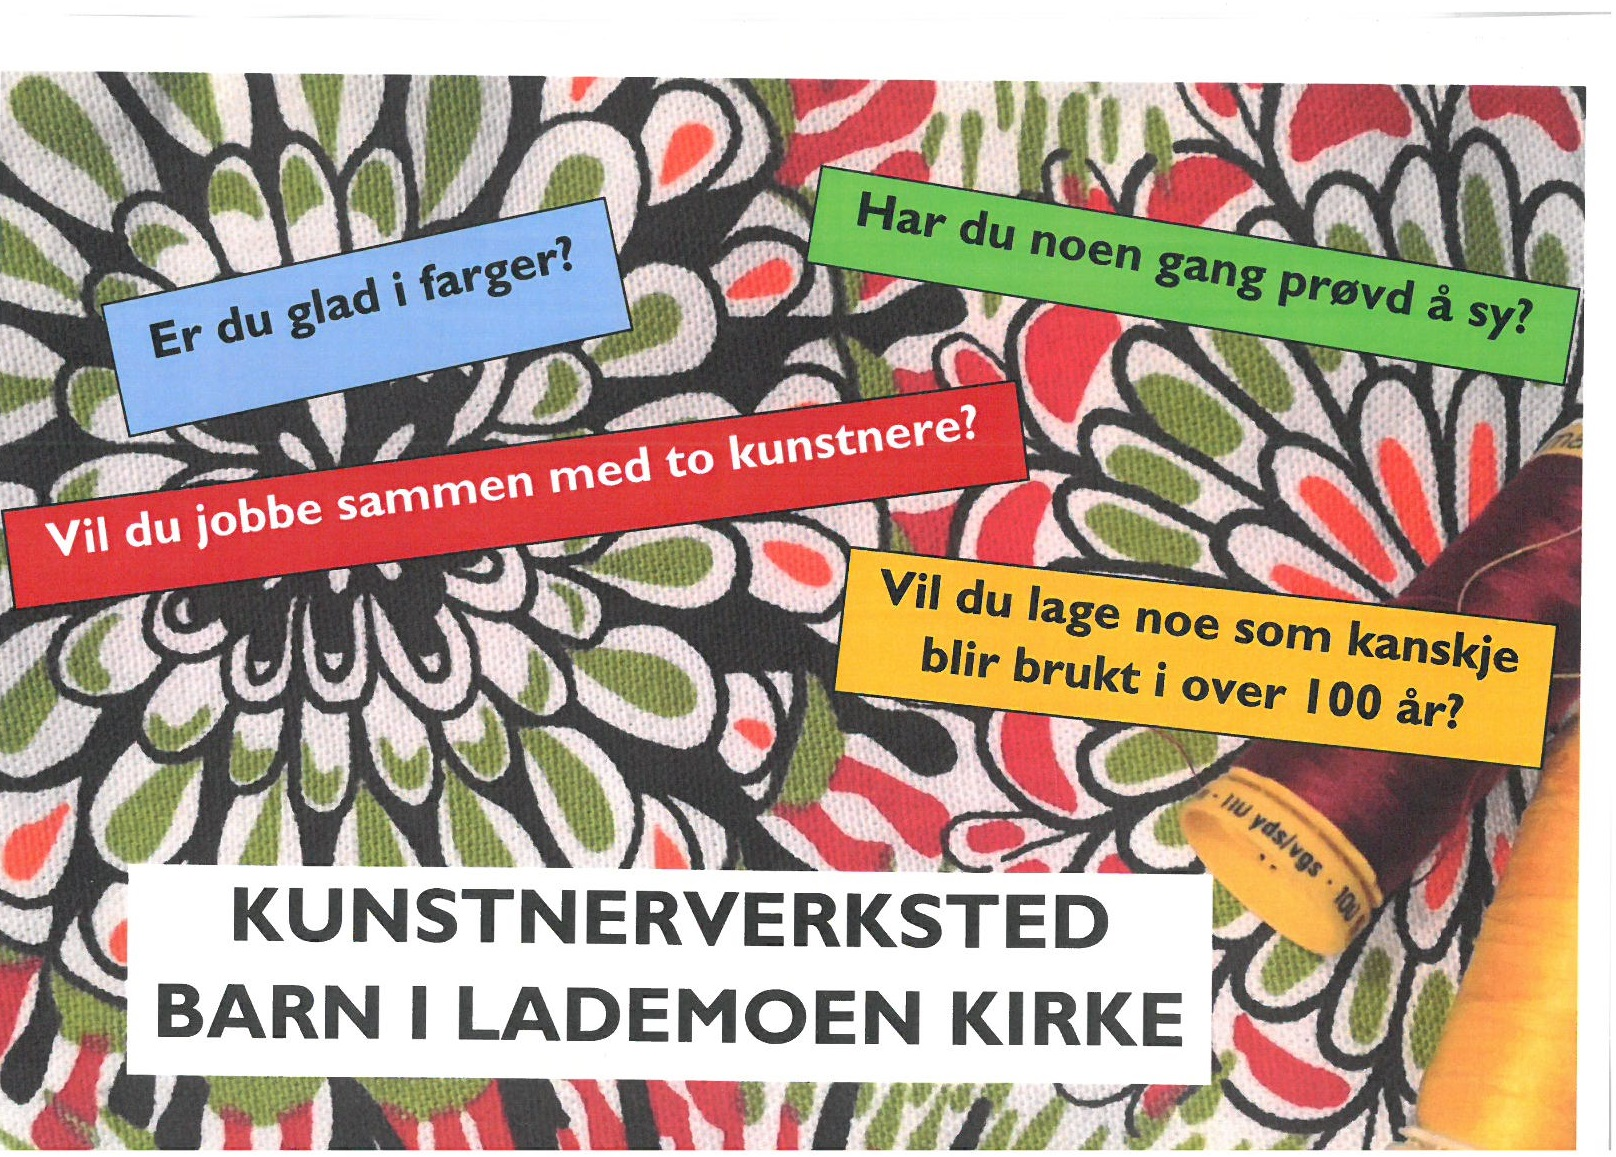 Kunstverksted for barn i Lademoen kirke